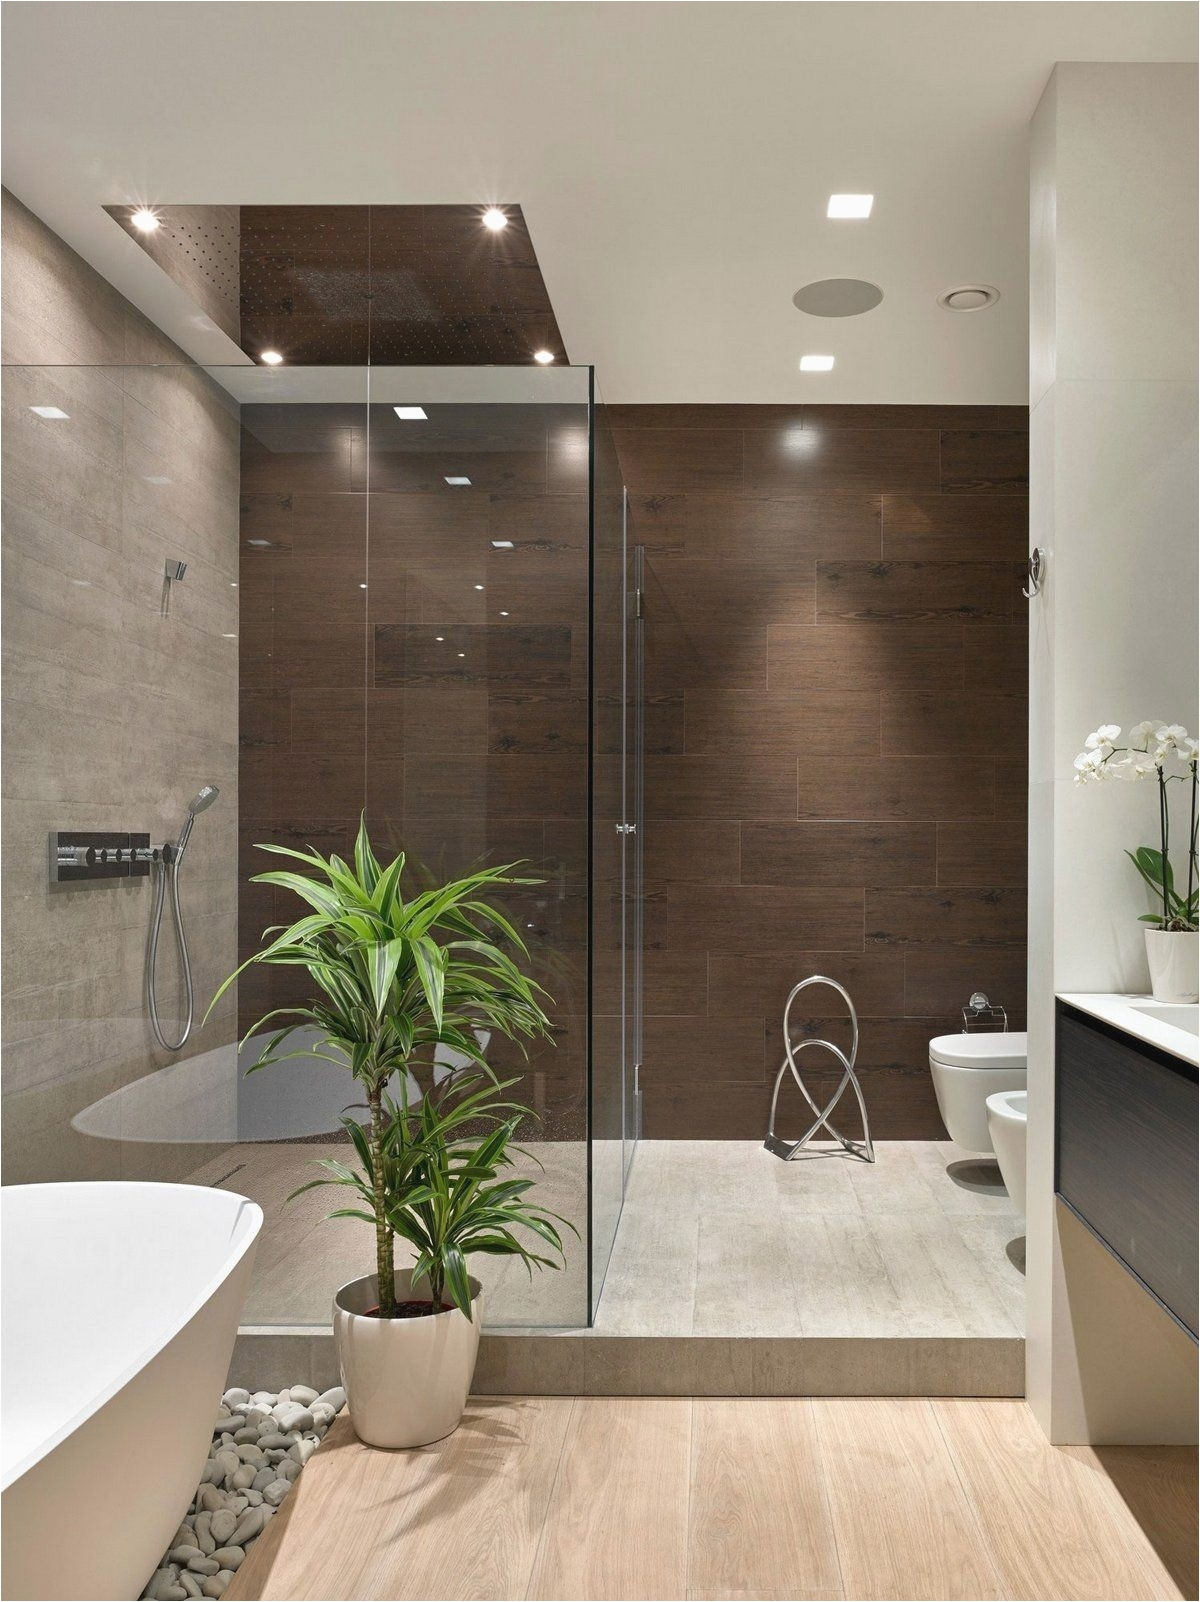 43 Calm and Relaxing Beige Bathroom Design Ideas 30 43 Calm and Relaxing Beige Bathroom Design Ideas norwin Home Design